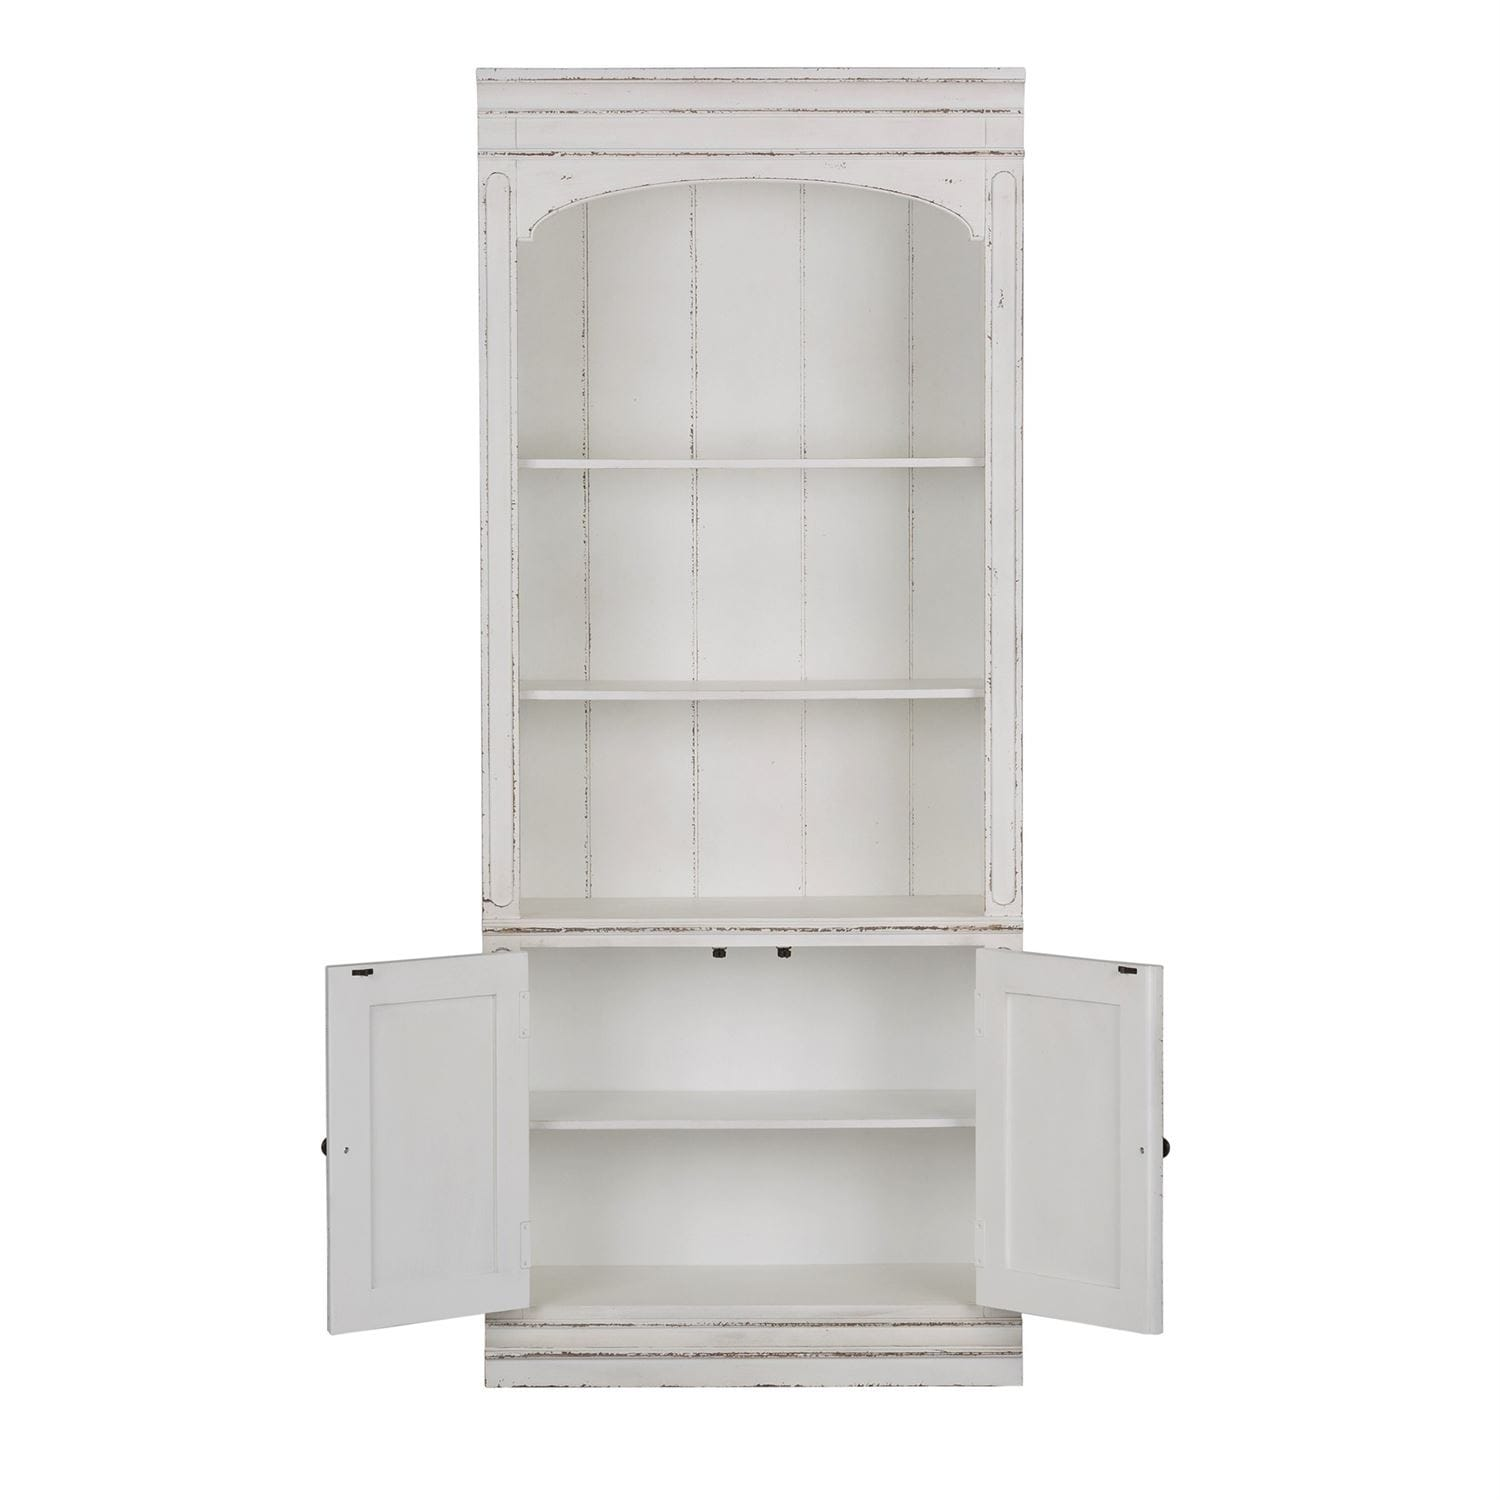 Shop Magnolia Manor Antique White Bunching Bookcase - Free Shipping Today -  Overstock.com - 25723675 - Shop Magnolia Manor Antique White Bunching Bookcase - Free Shipping